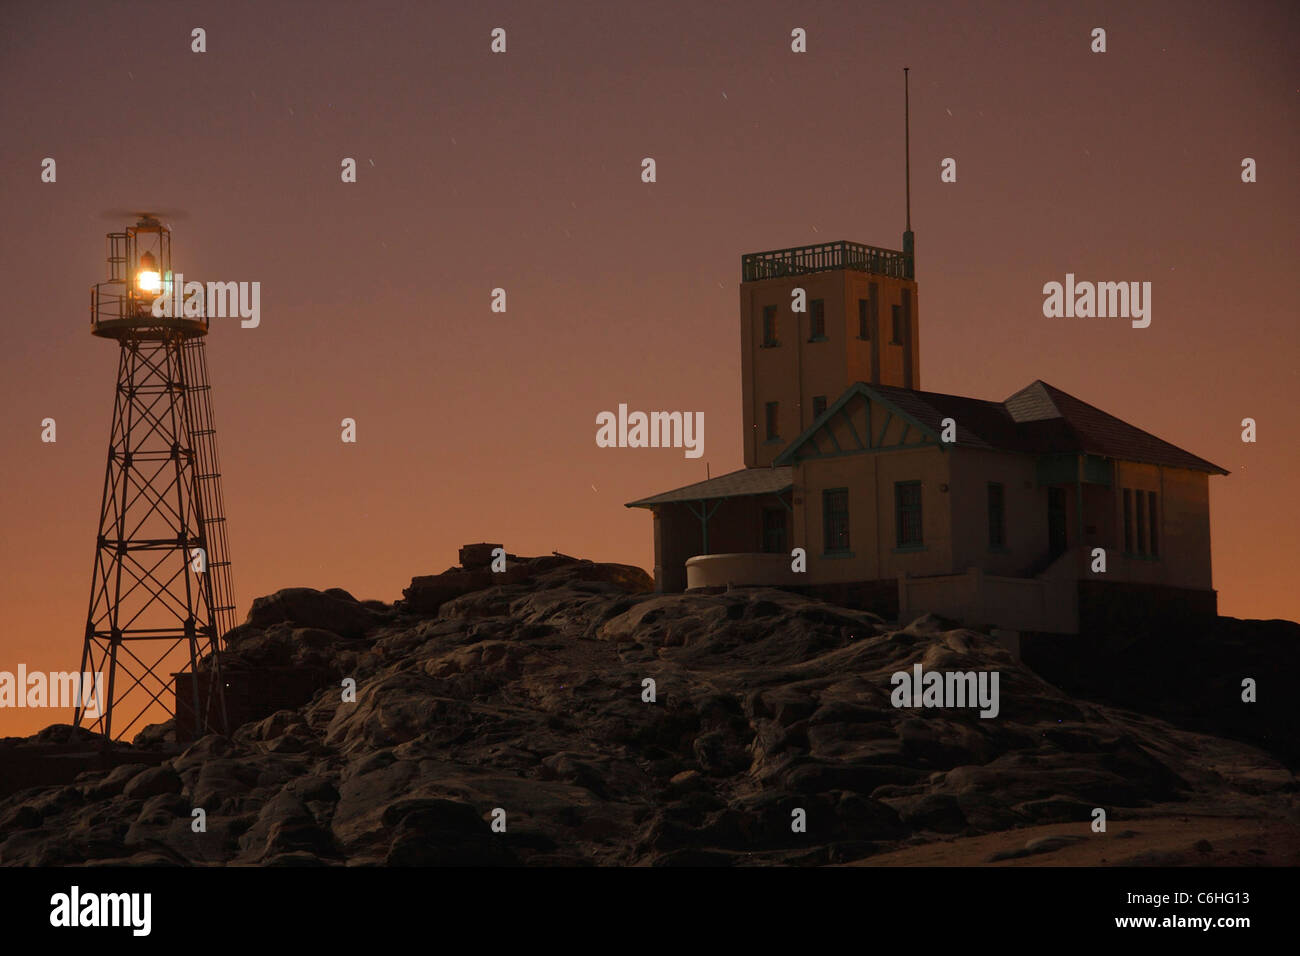 Luderitz light house at night - Stock Image